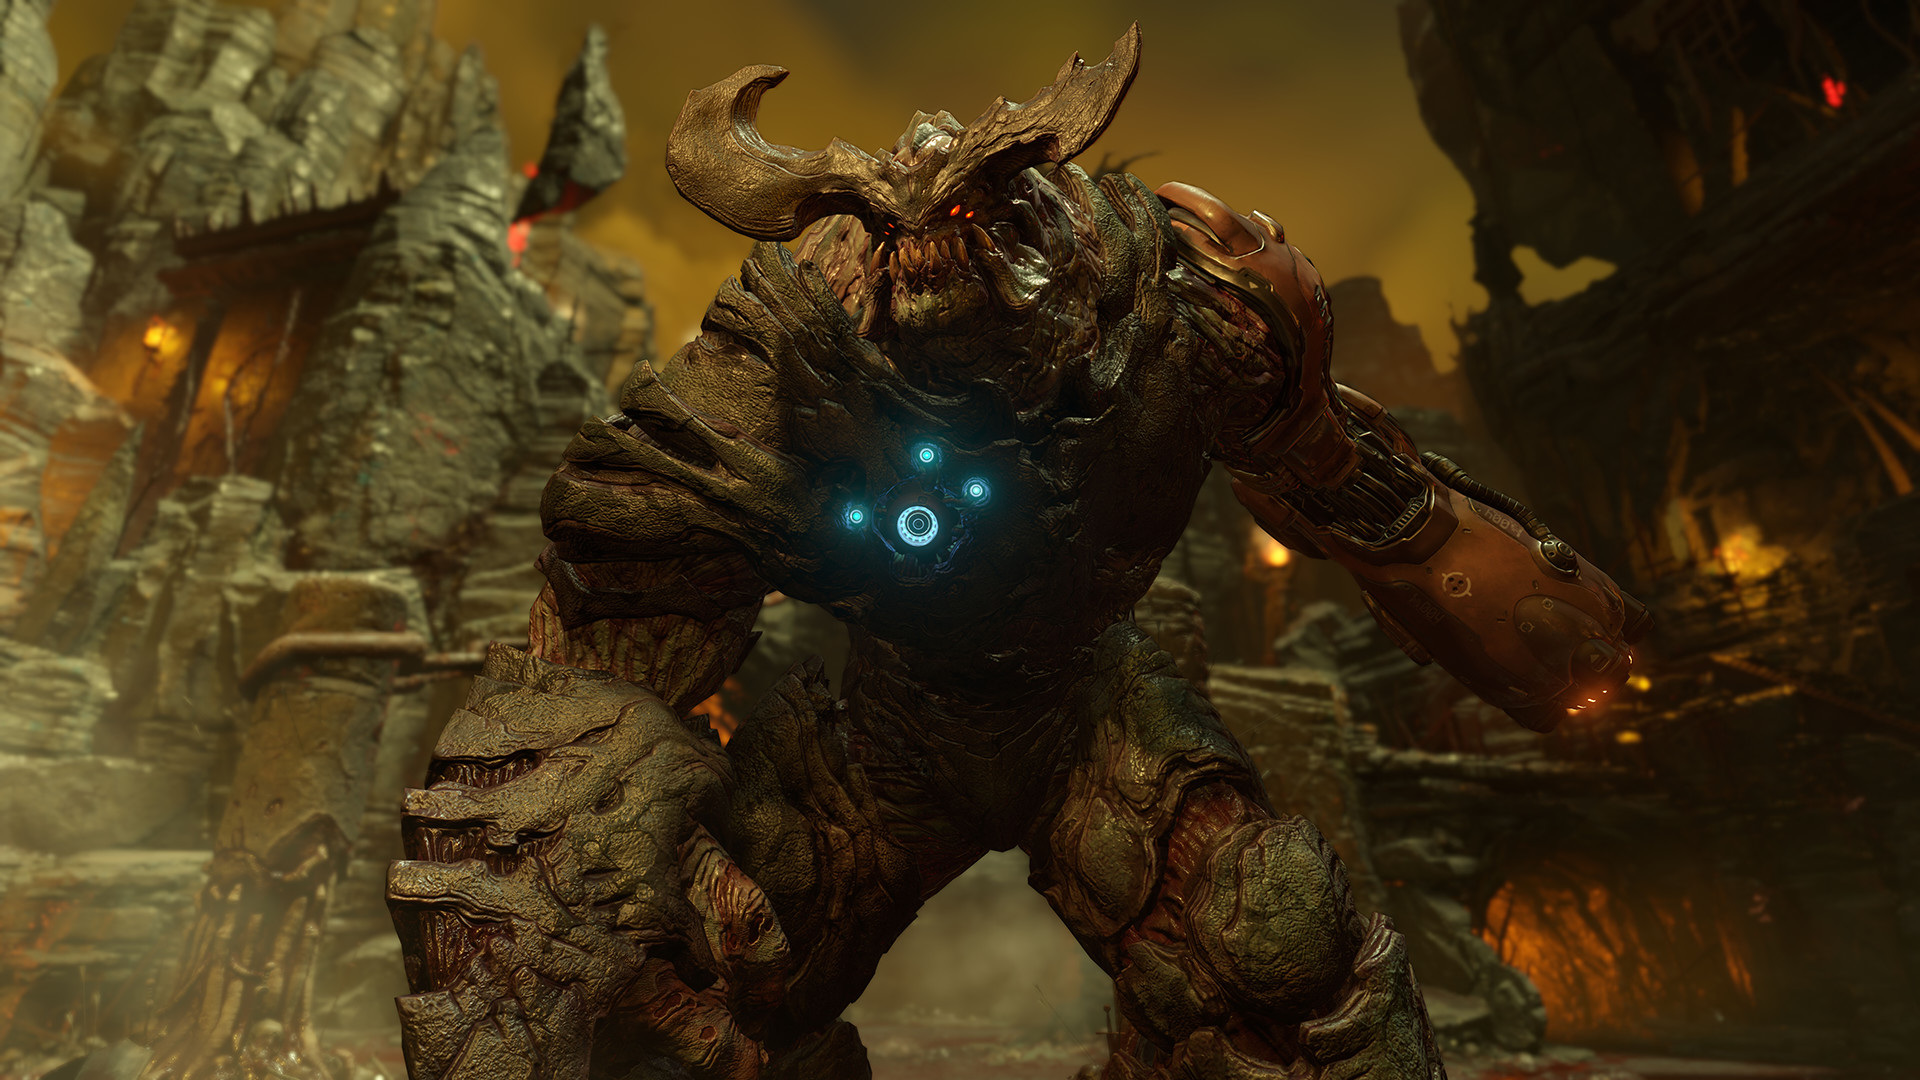 DOOM 2016 (STEAM KEY / RU / CIS) + GIFT